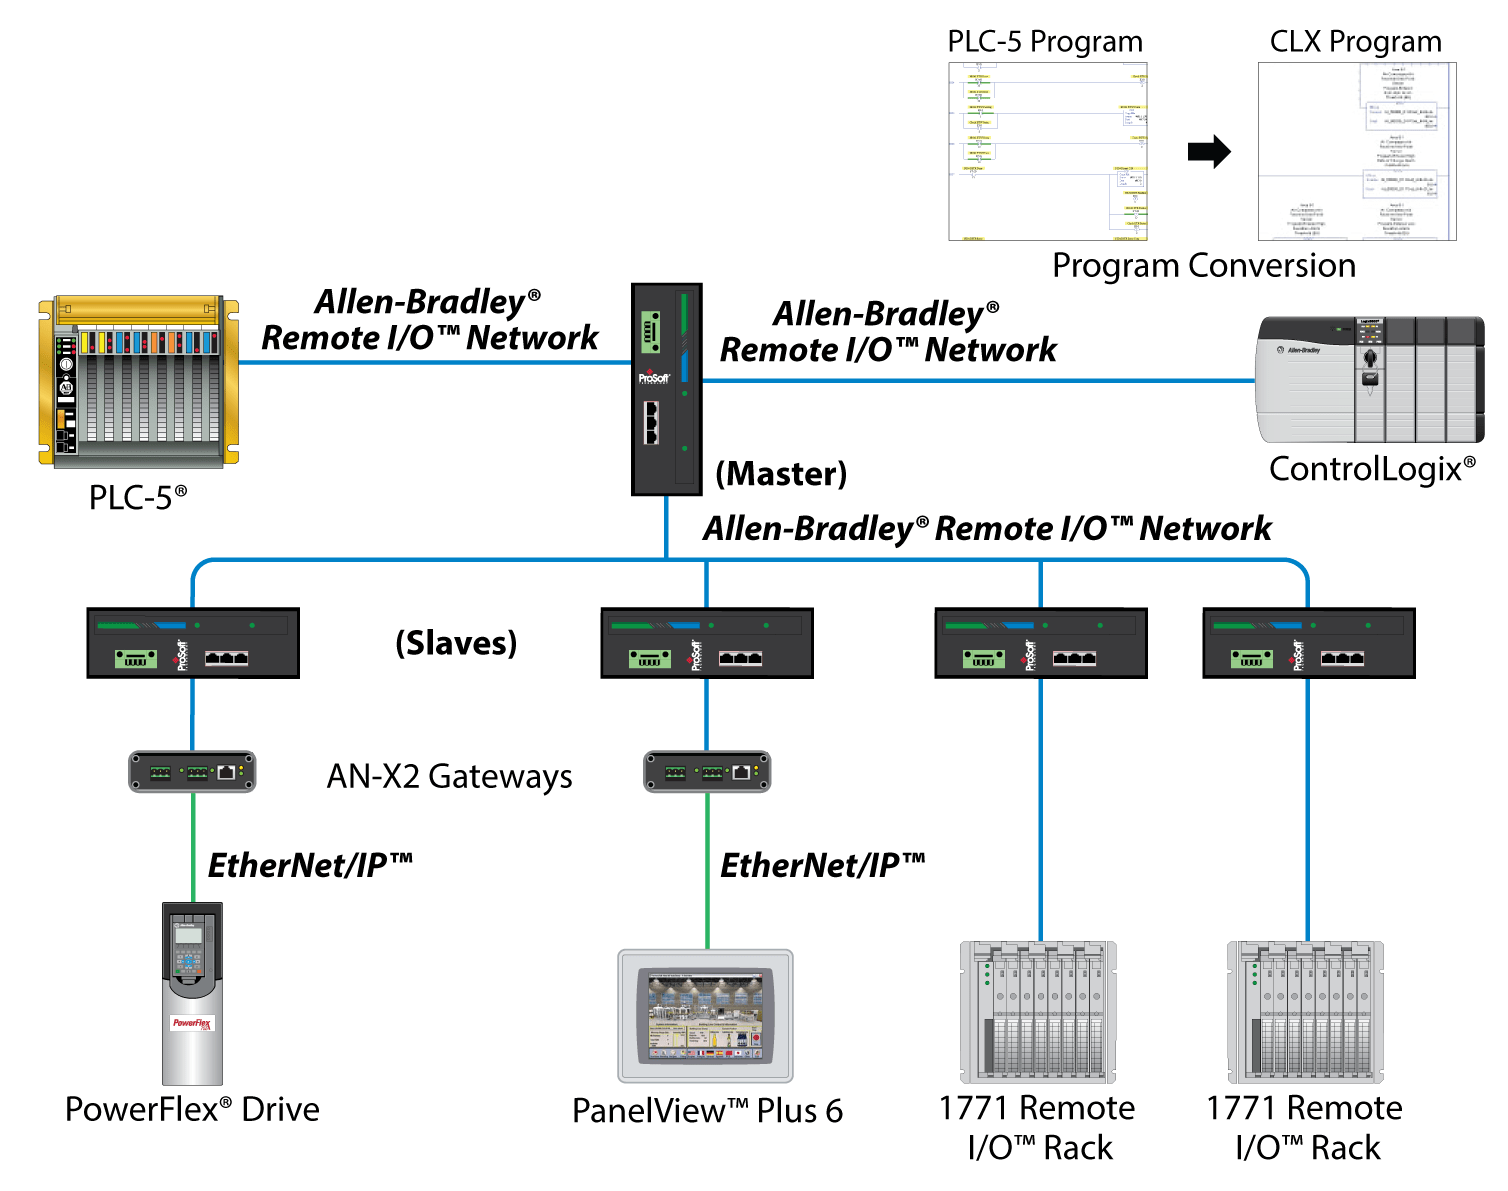 hight resolution of while your plc 5 system is running you can convert your plc 5 program to a controllogix program now add an allen bradley 1756 rio module